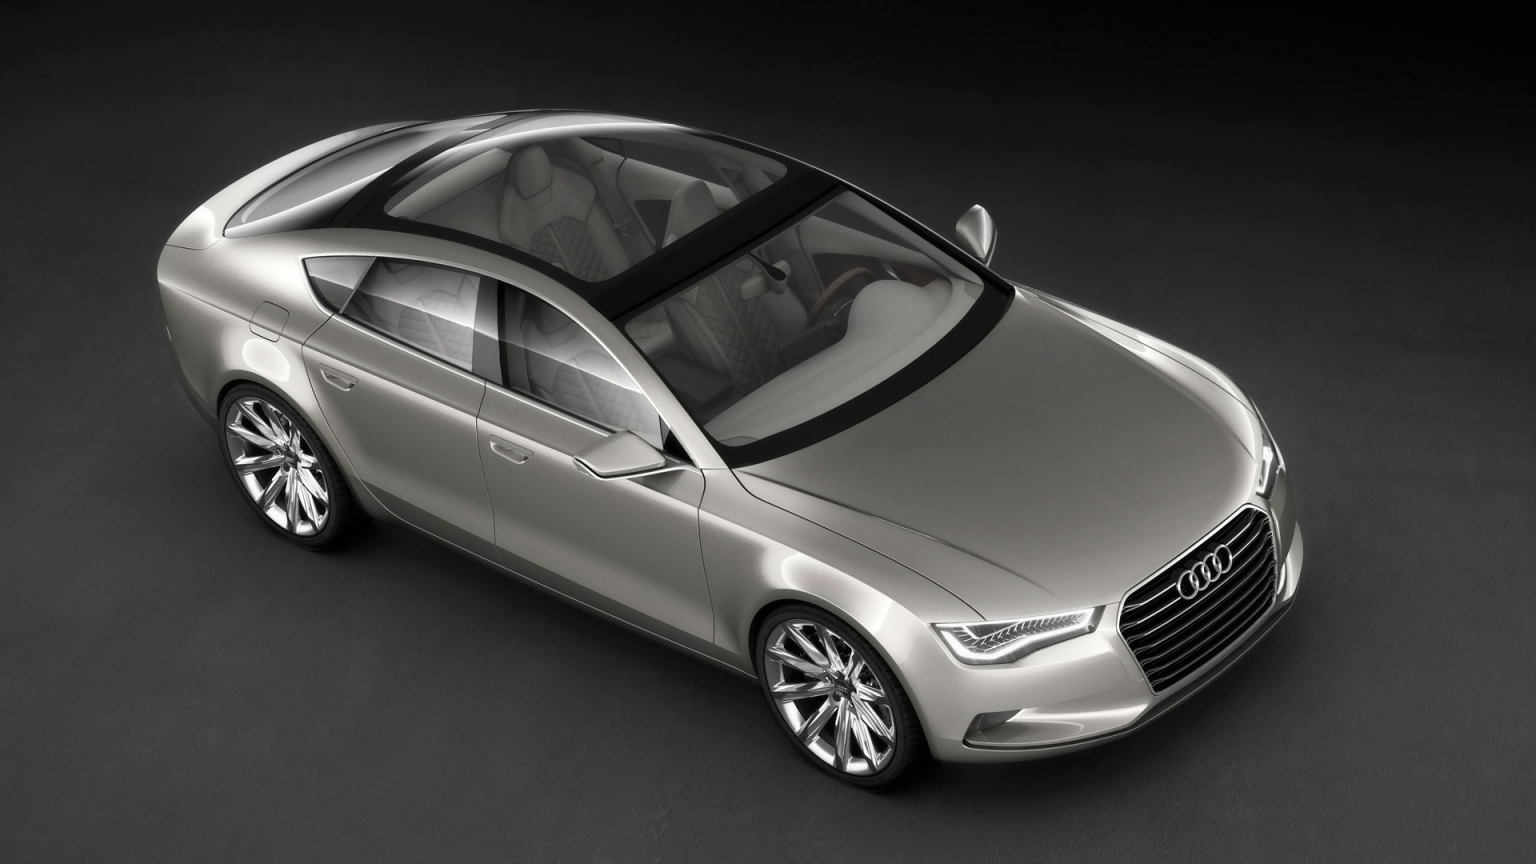 2009 Audi Sportback Concept - Front And Side Top for 1536 x 864 HDTV resolution